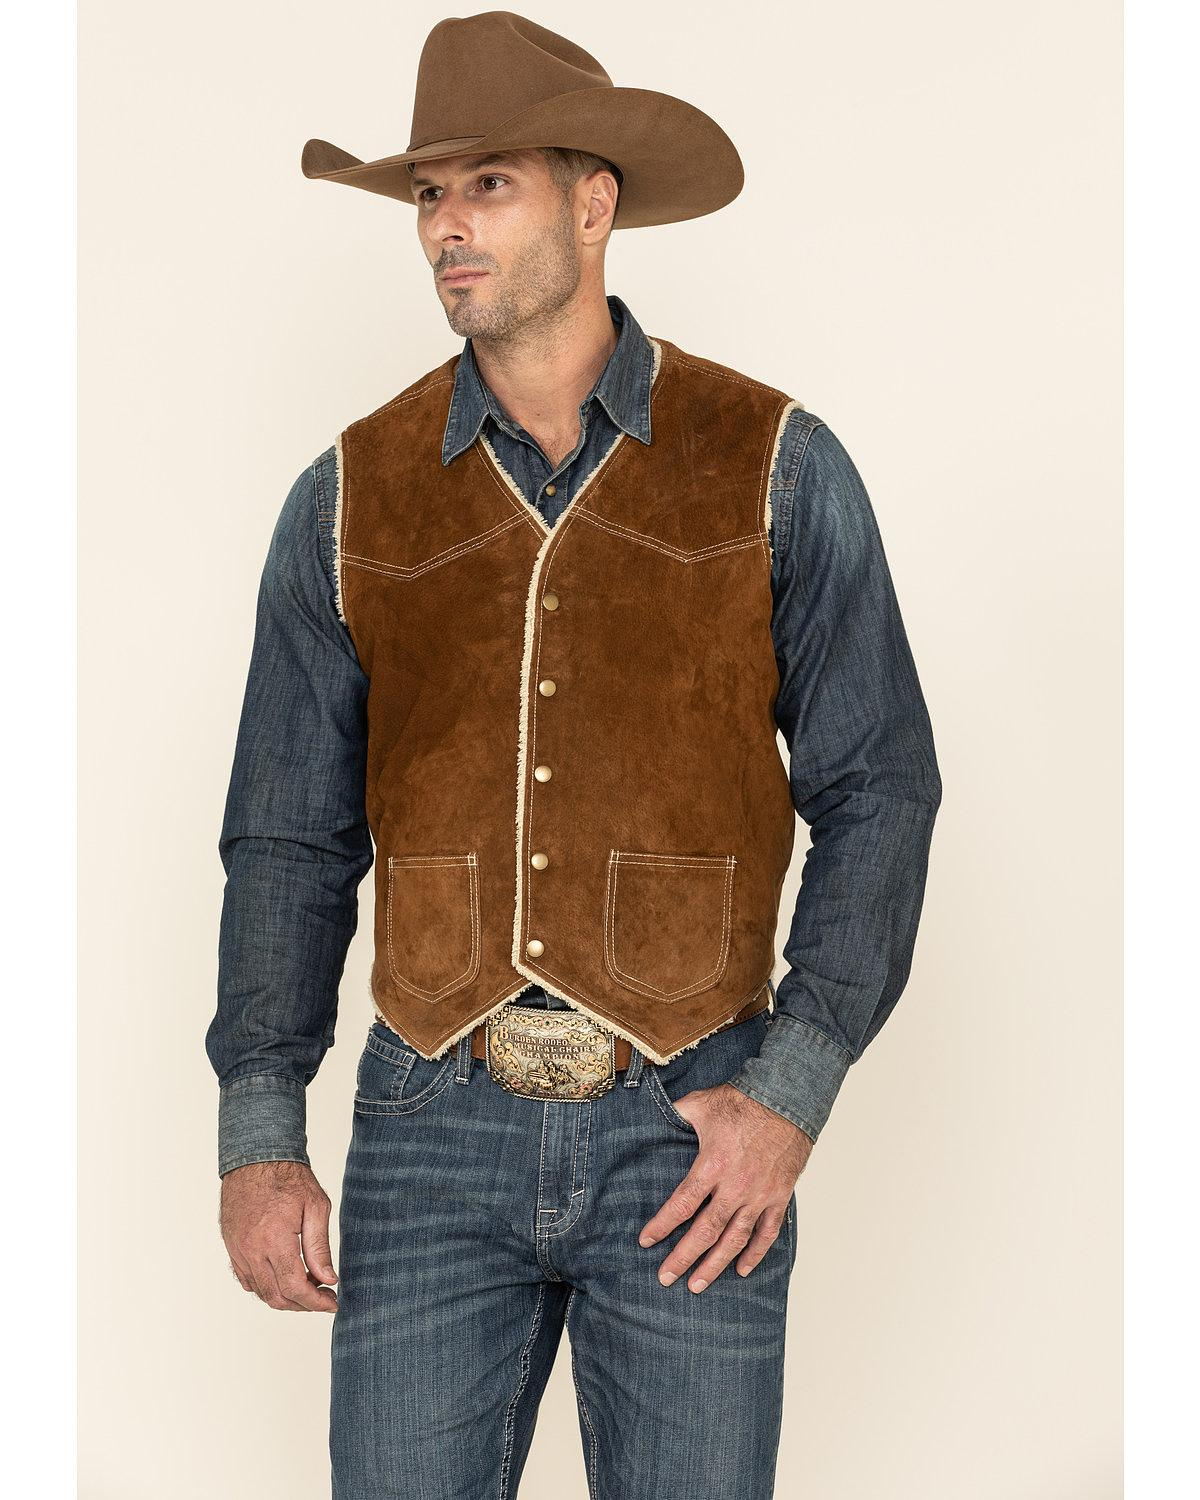 Hard to find mens big and tall western vests in both leather and suede as well as mens western dress vests for weddings in matching designs for weddings. Old west vest for men in leather suede and cotton canvas frontier cowboy Scully vests.